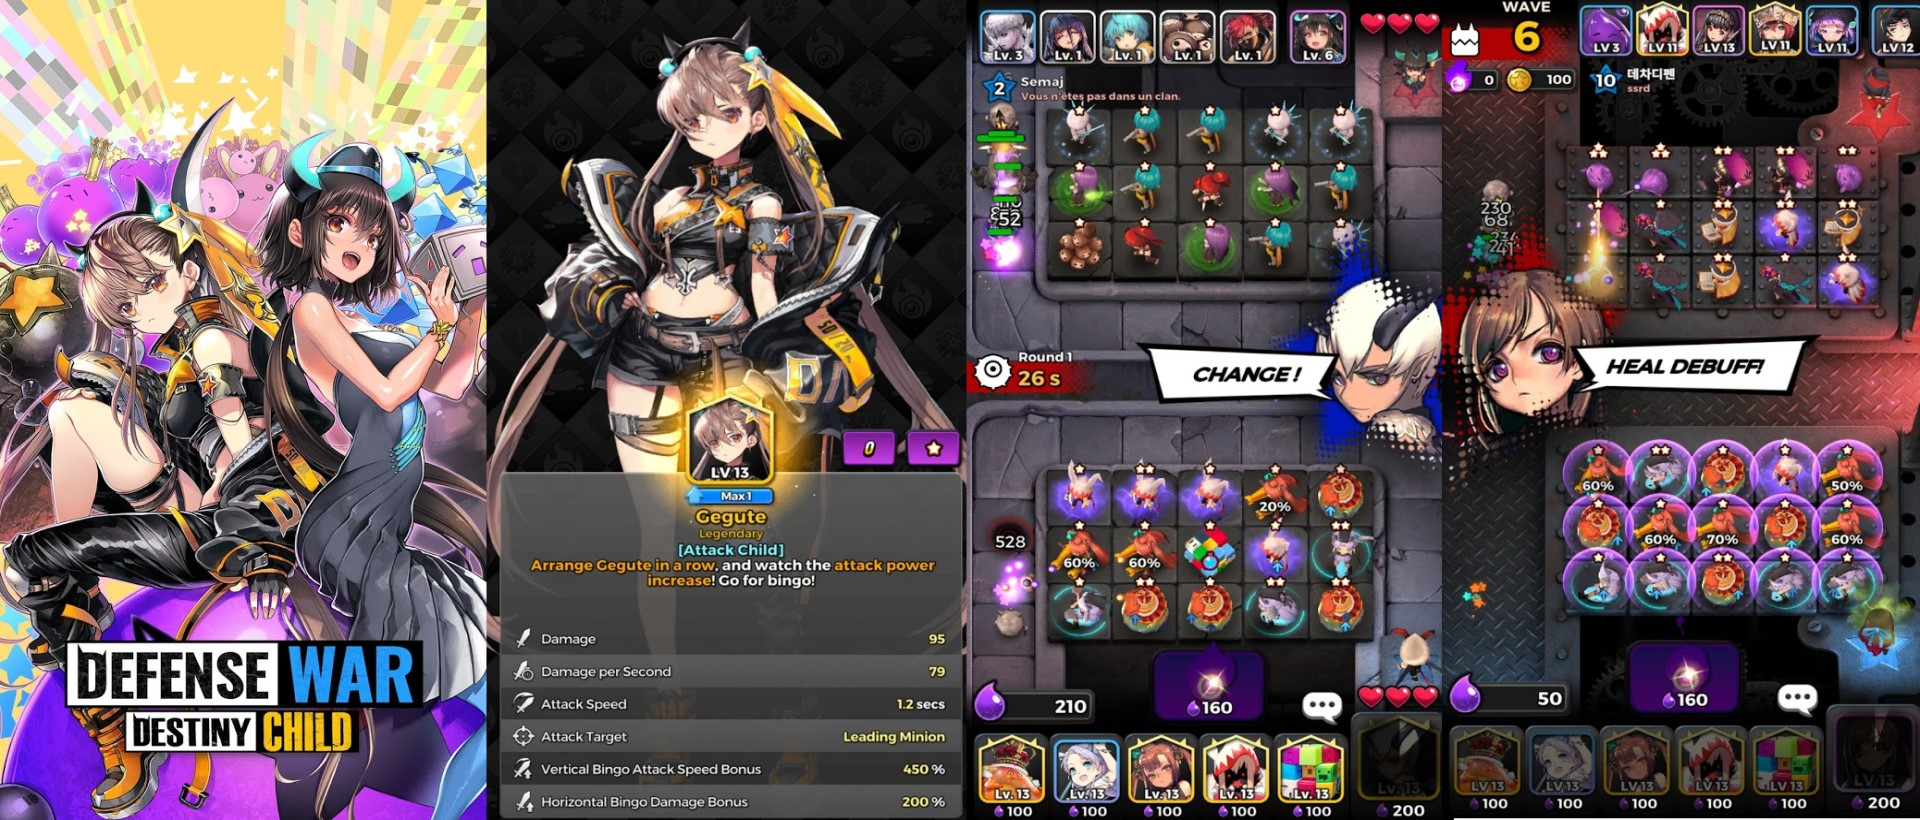 Download Destiny Child : Defense War on PC with NoxPlayer ...